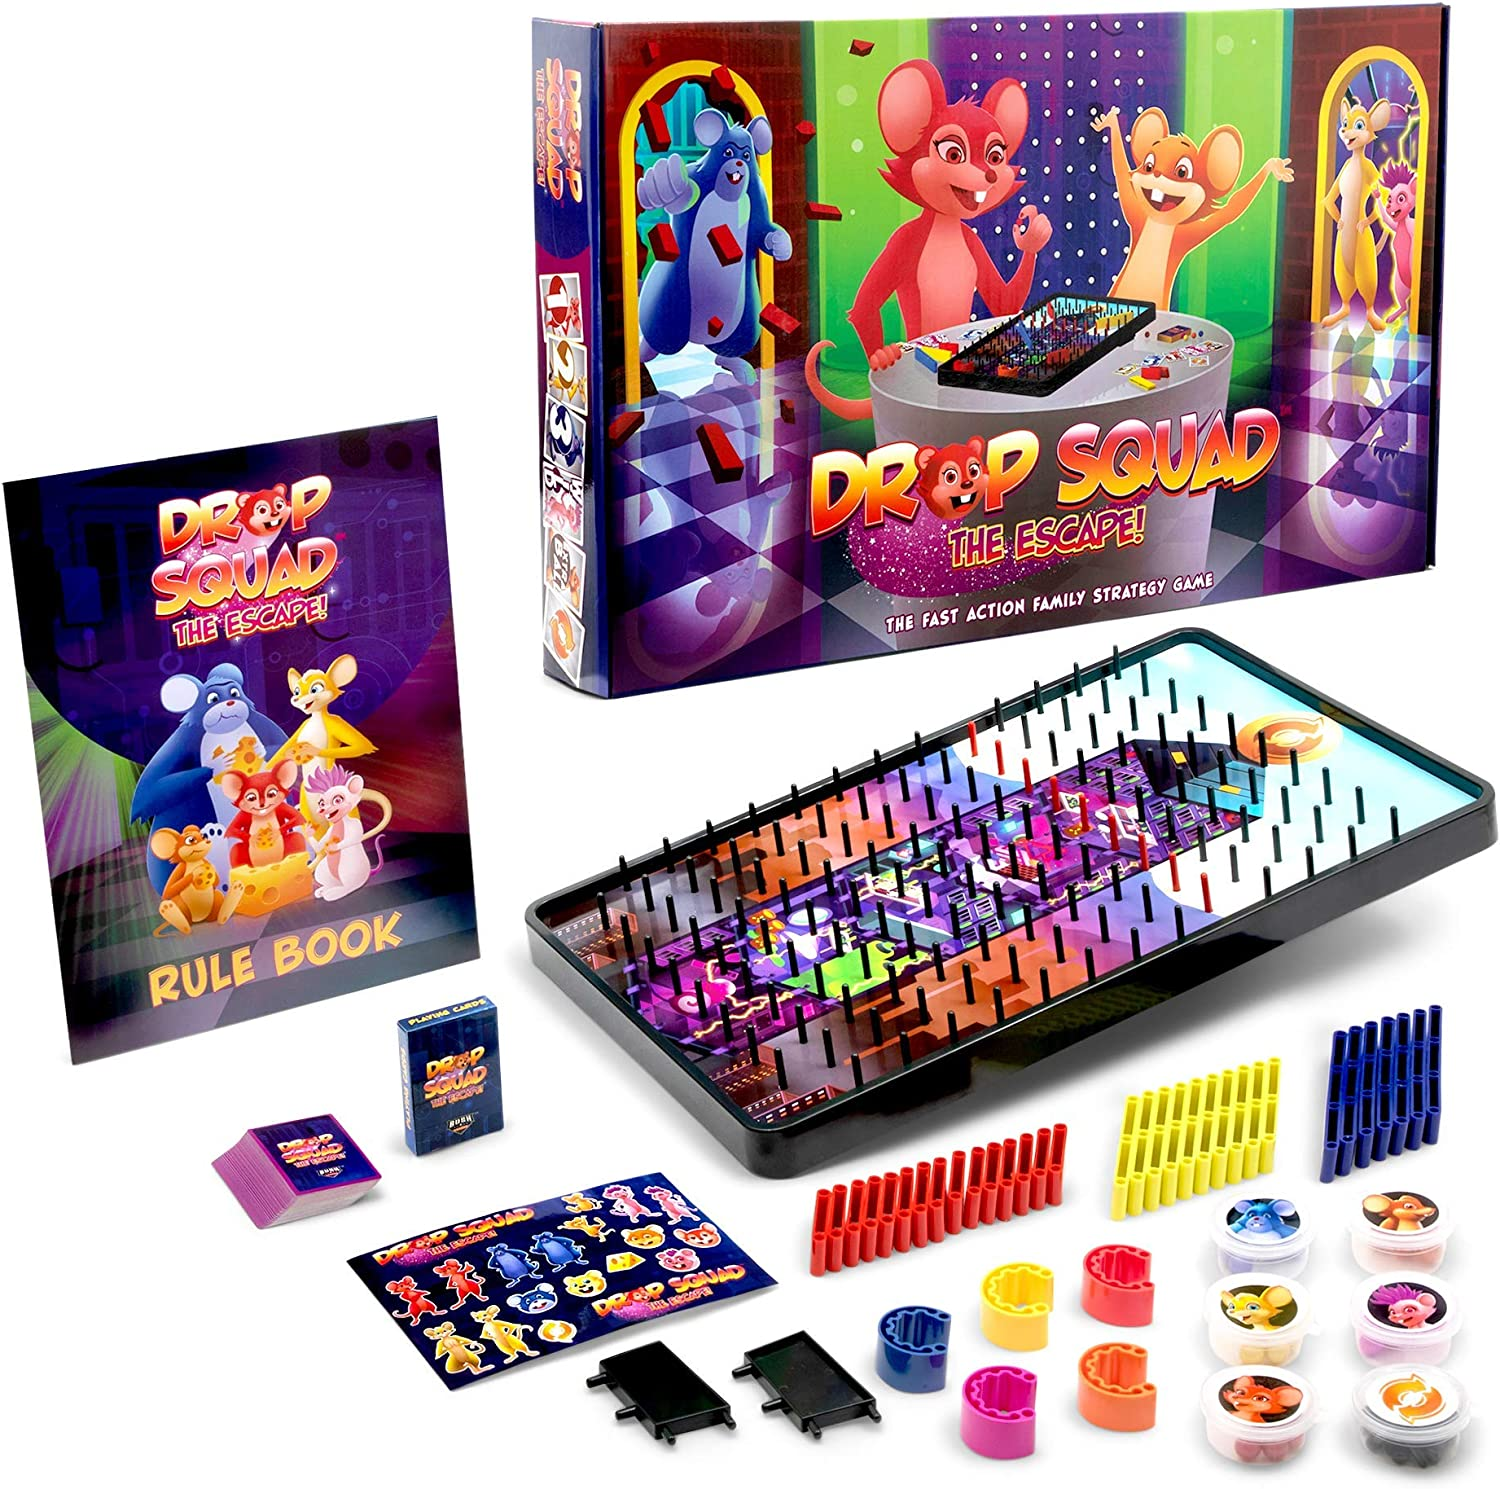 Amazon Com Drop Squad Fun Board Game For Little Kids Any Age Teens And Adults Best Kid Friendly Board Games For A New Family Night Activity Ages 5 6 7 8 9